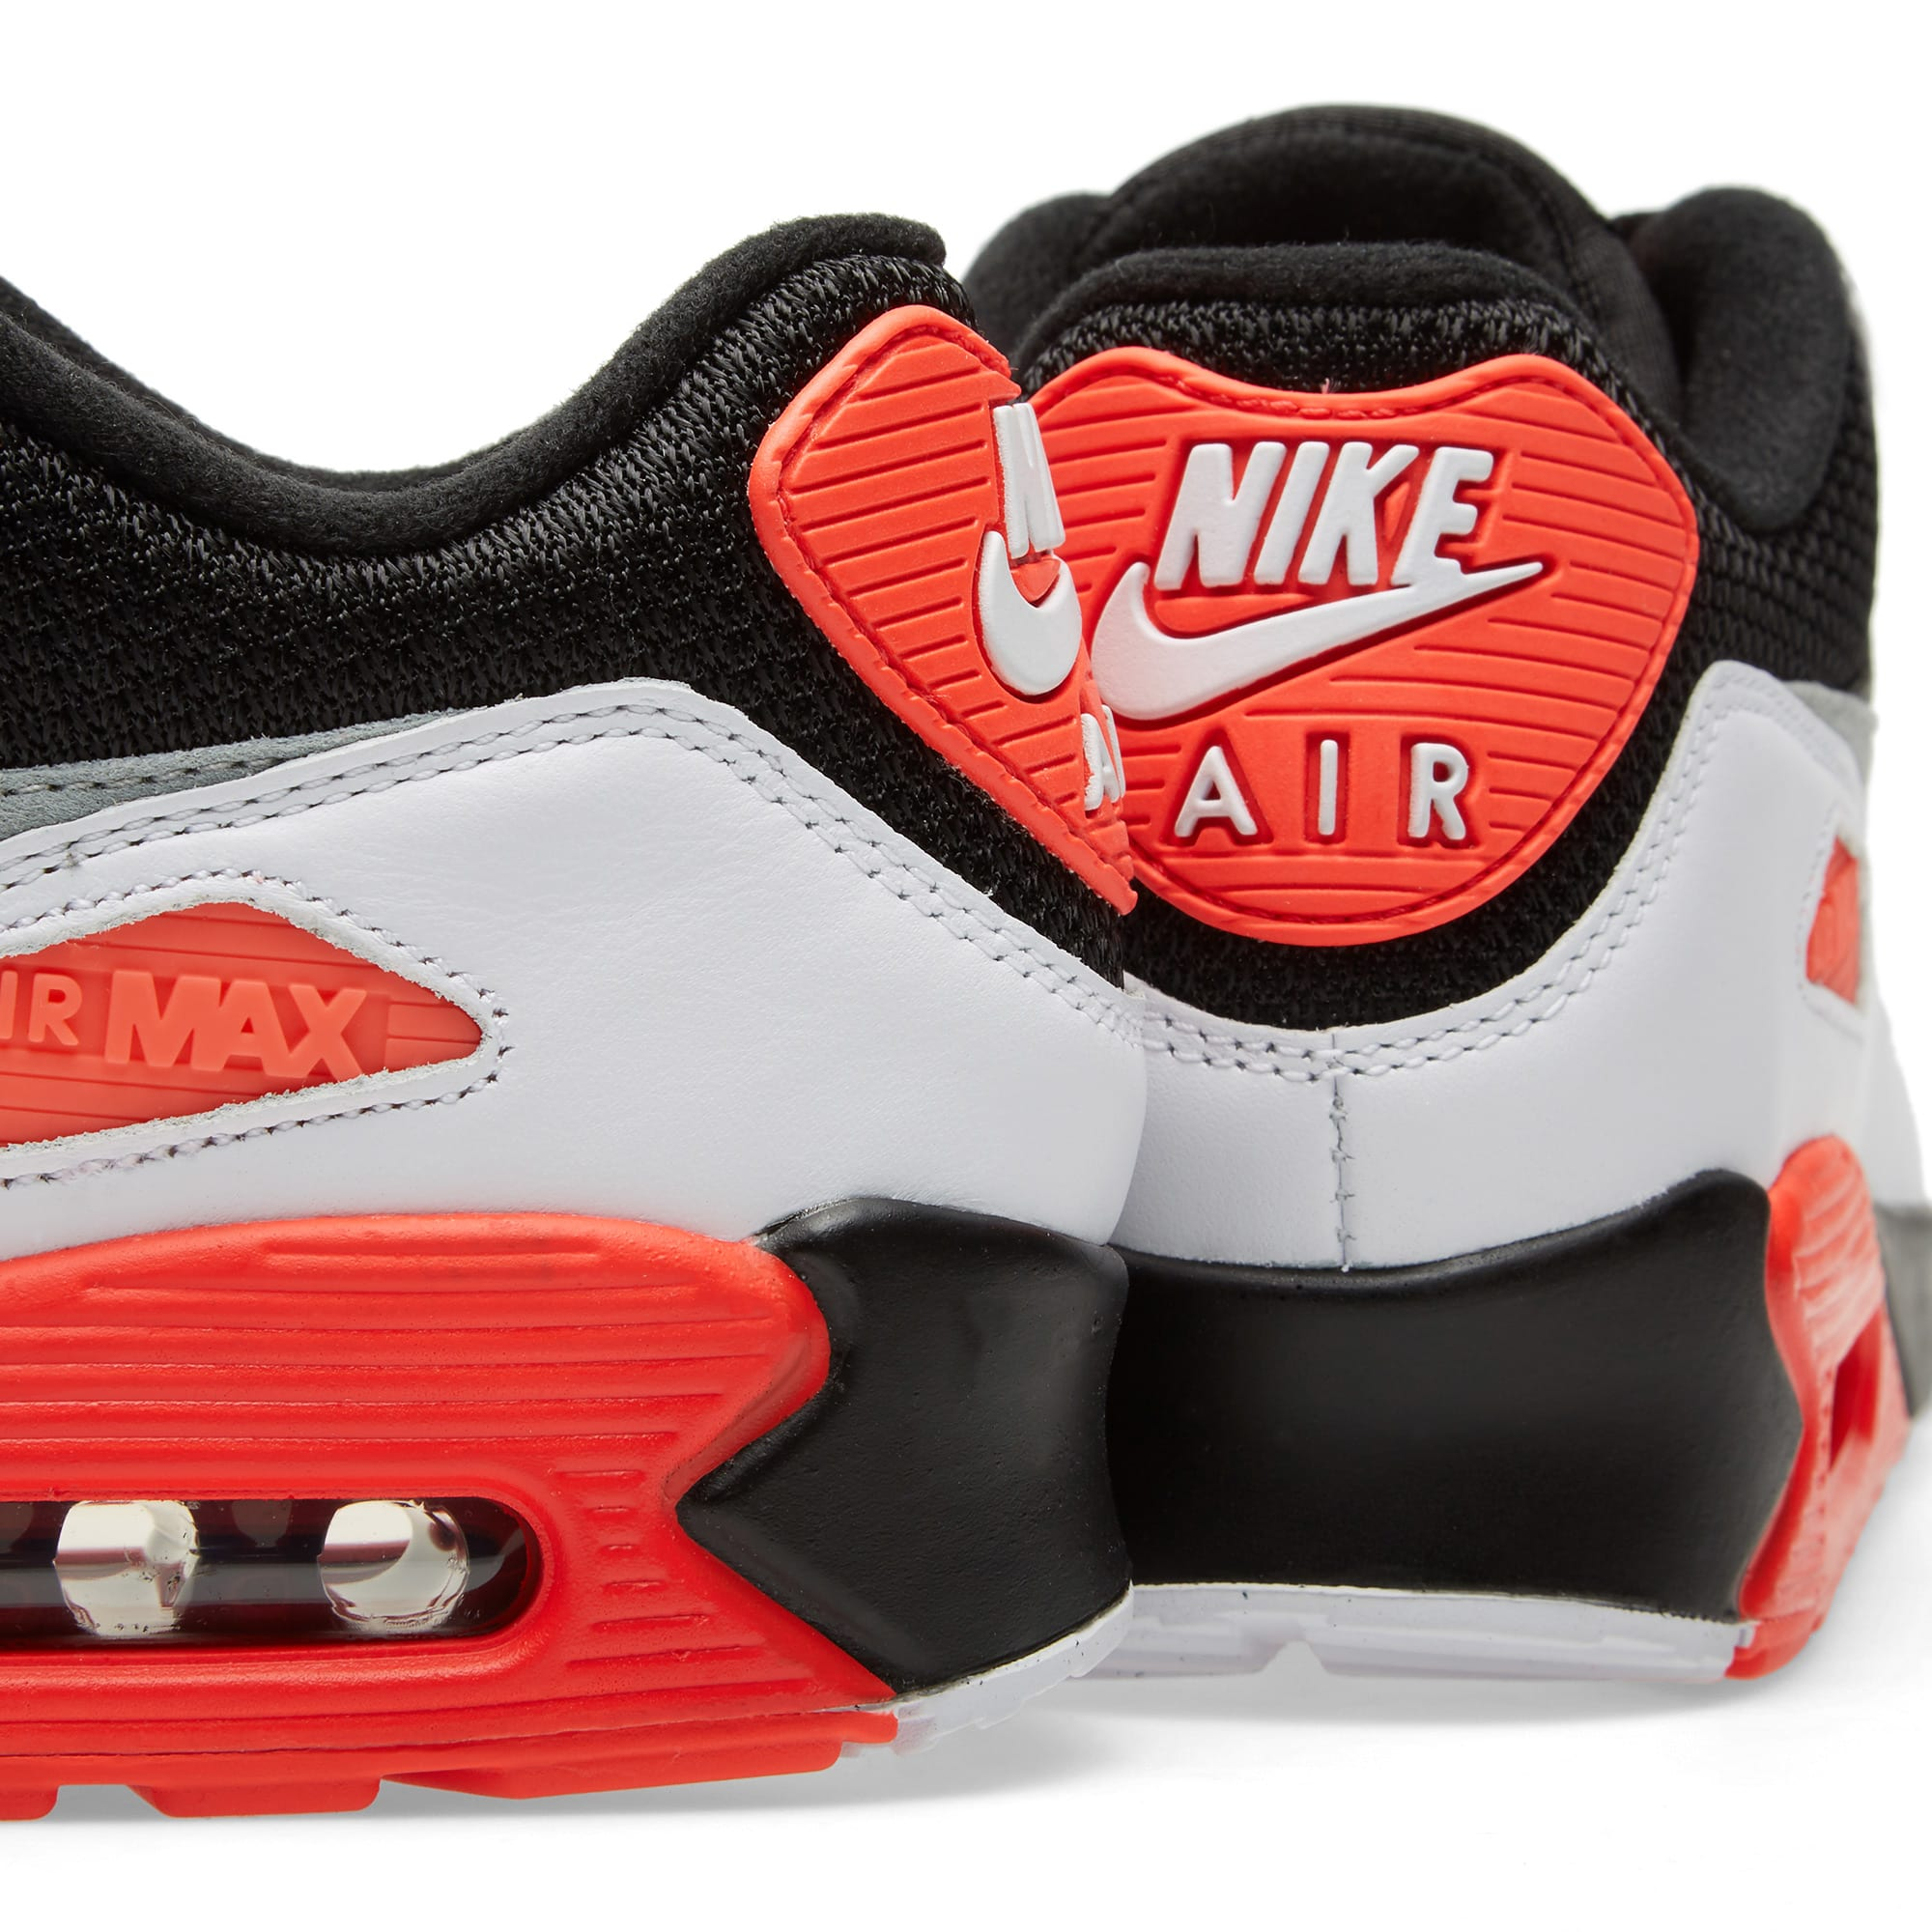 pretty nice 40fdc 88902 Nike Air Max 90 OG  Reverse Infrared  Black, Neutral   Dark Grey   END.